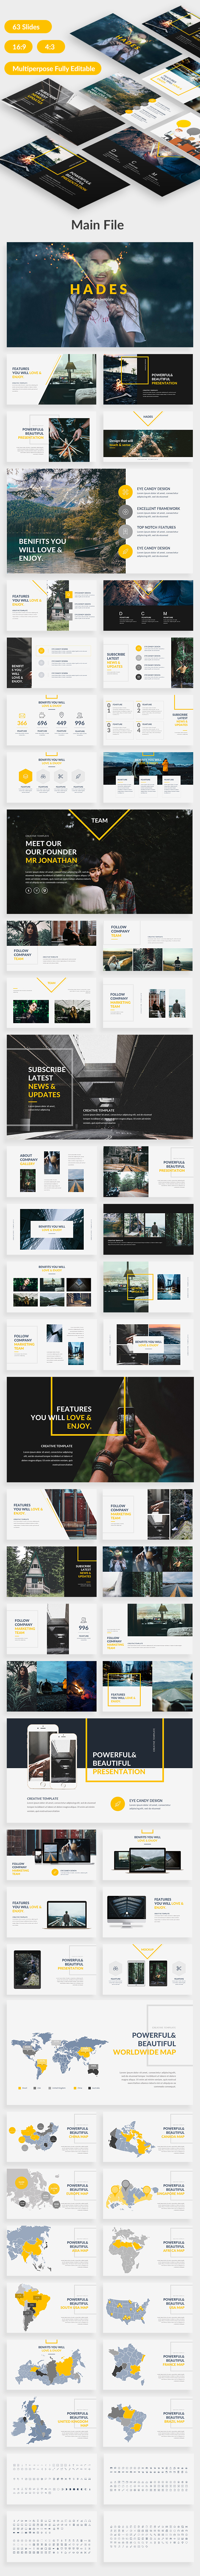 Hades Creative Google Slide Template by bypaintdesign | GraphicRiver